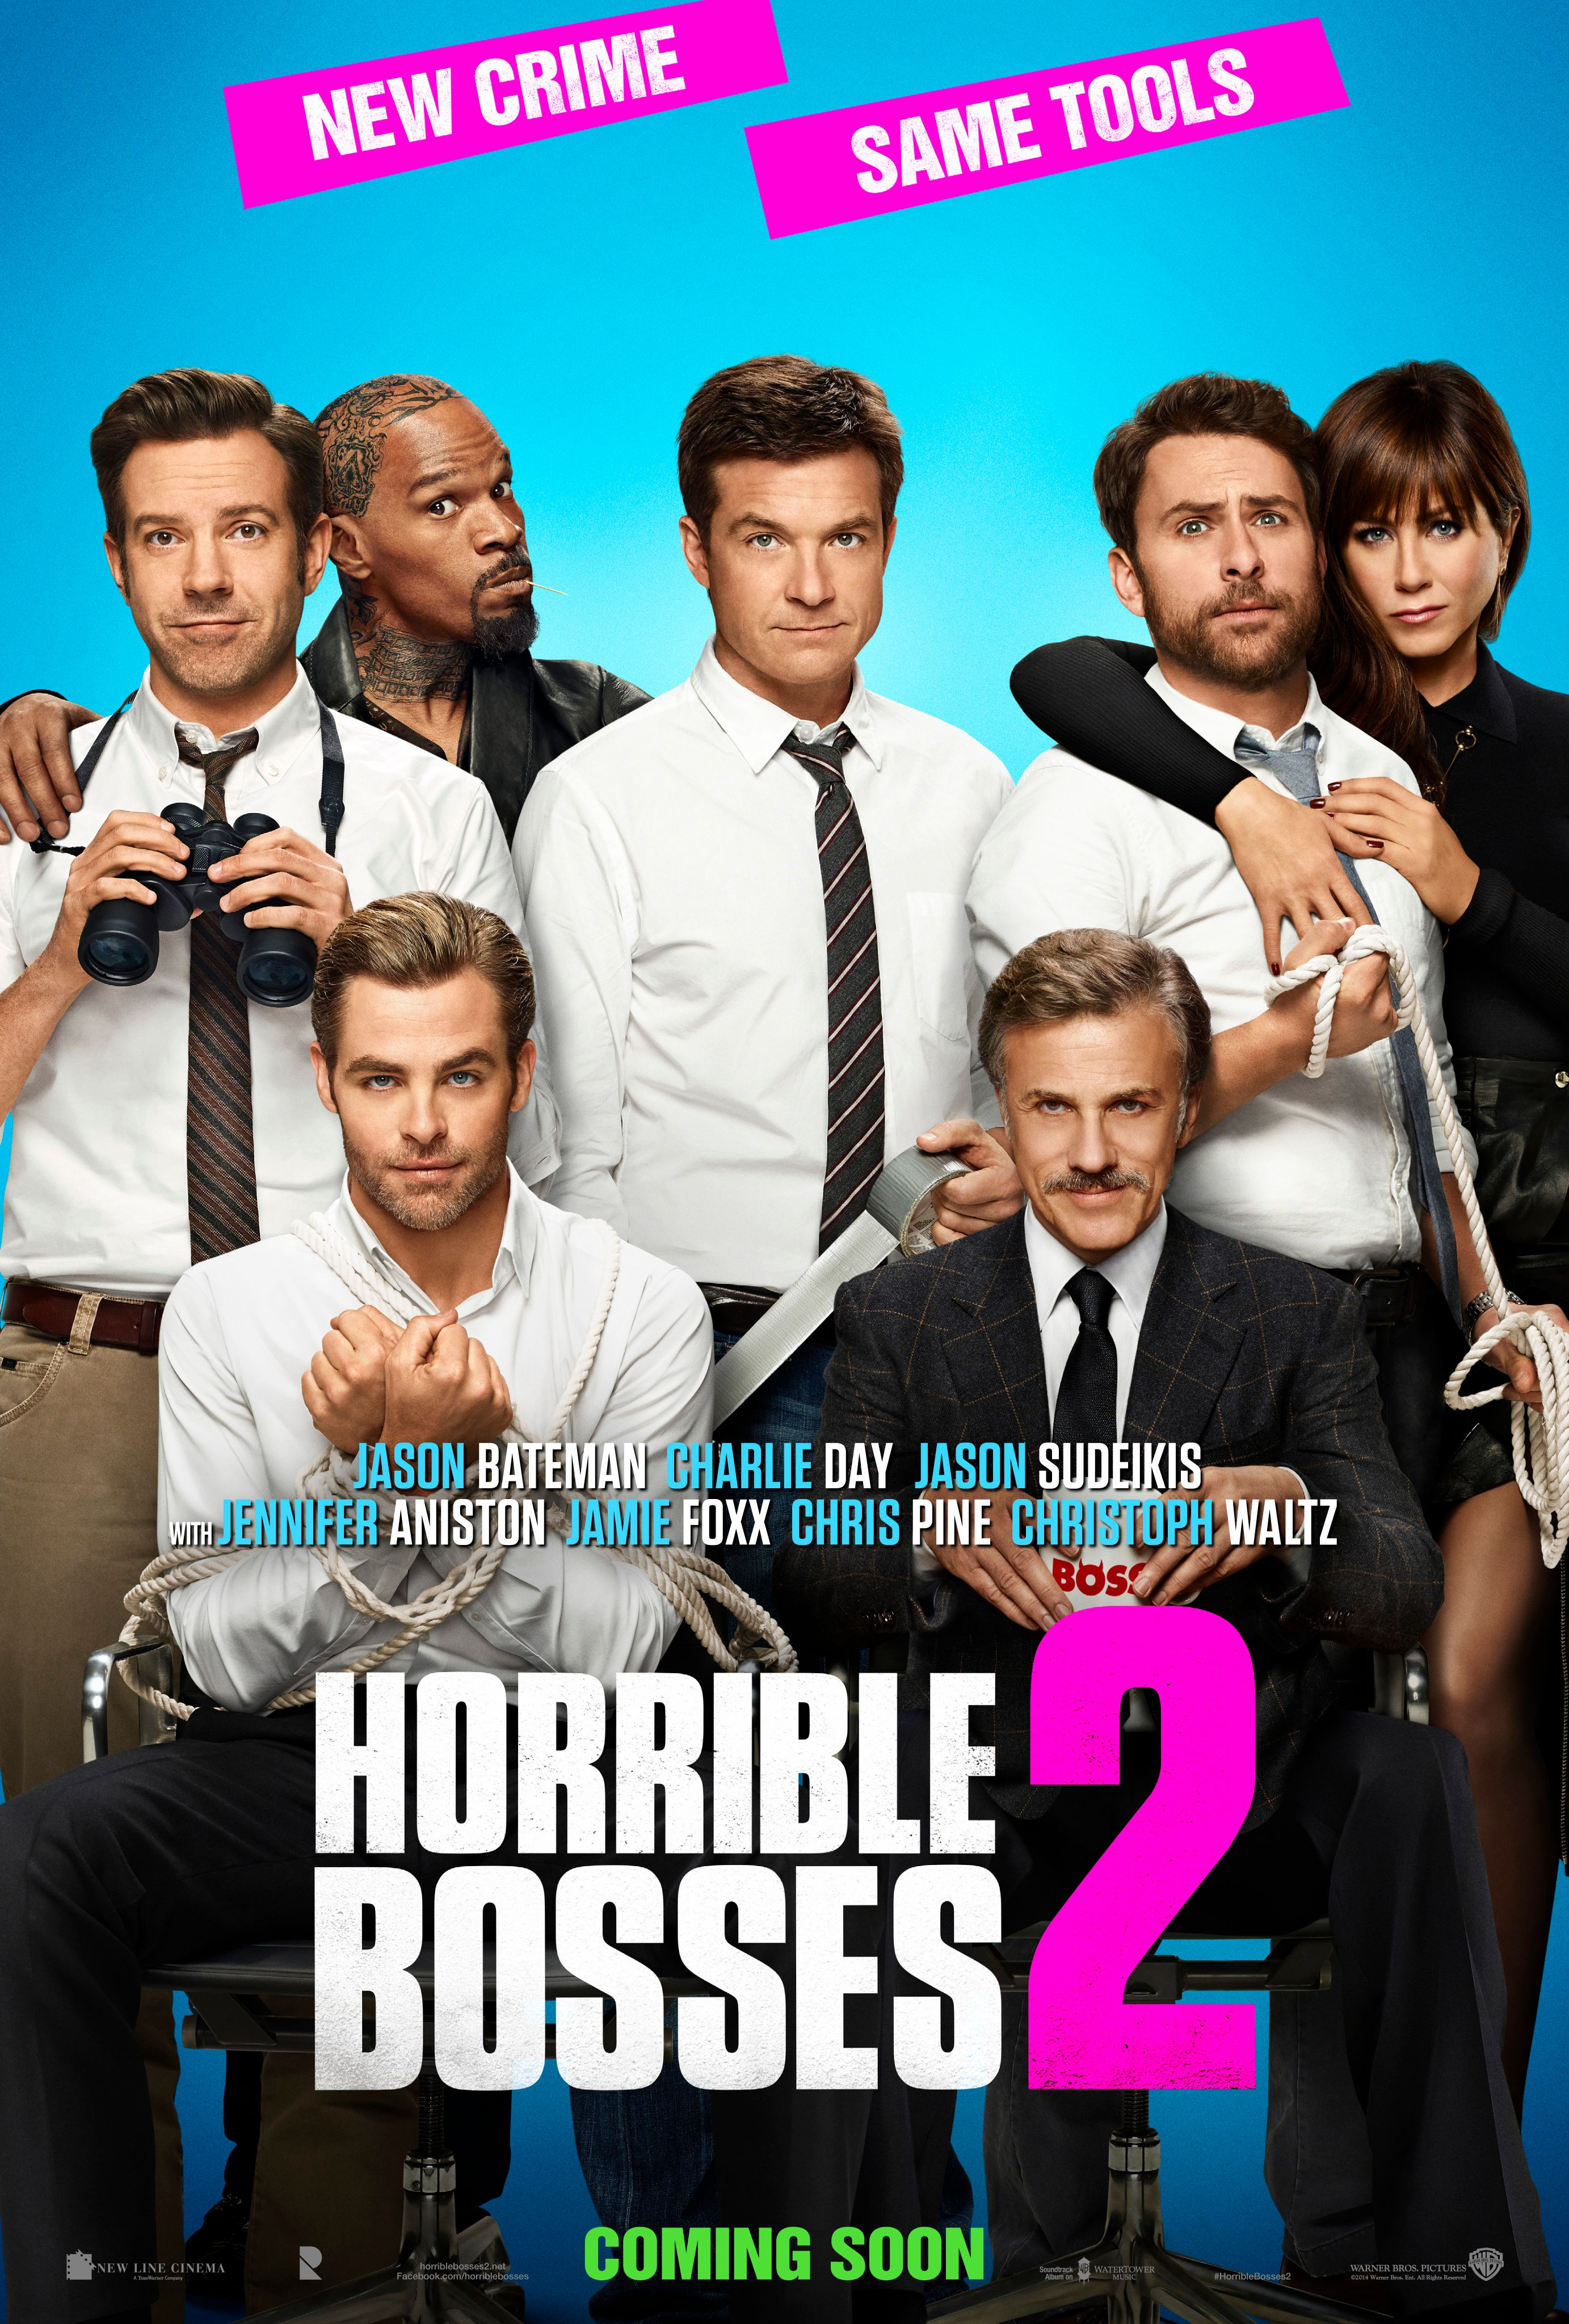 horrible bosses archives by perri nemiroff 12 2014